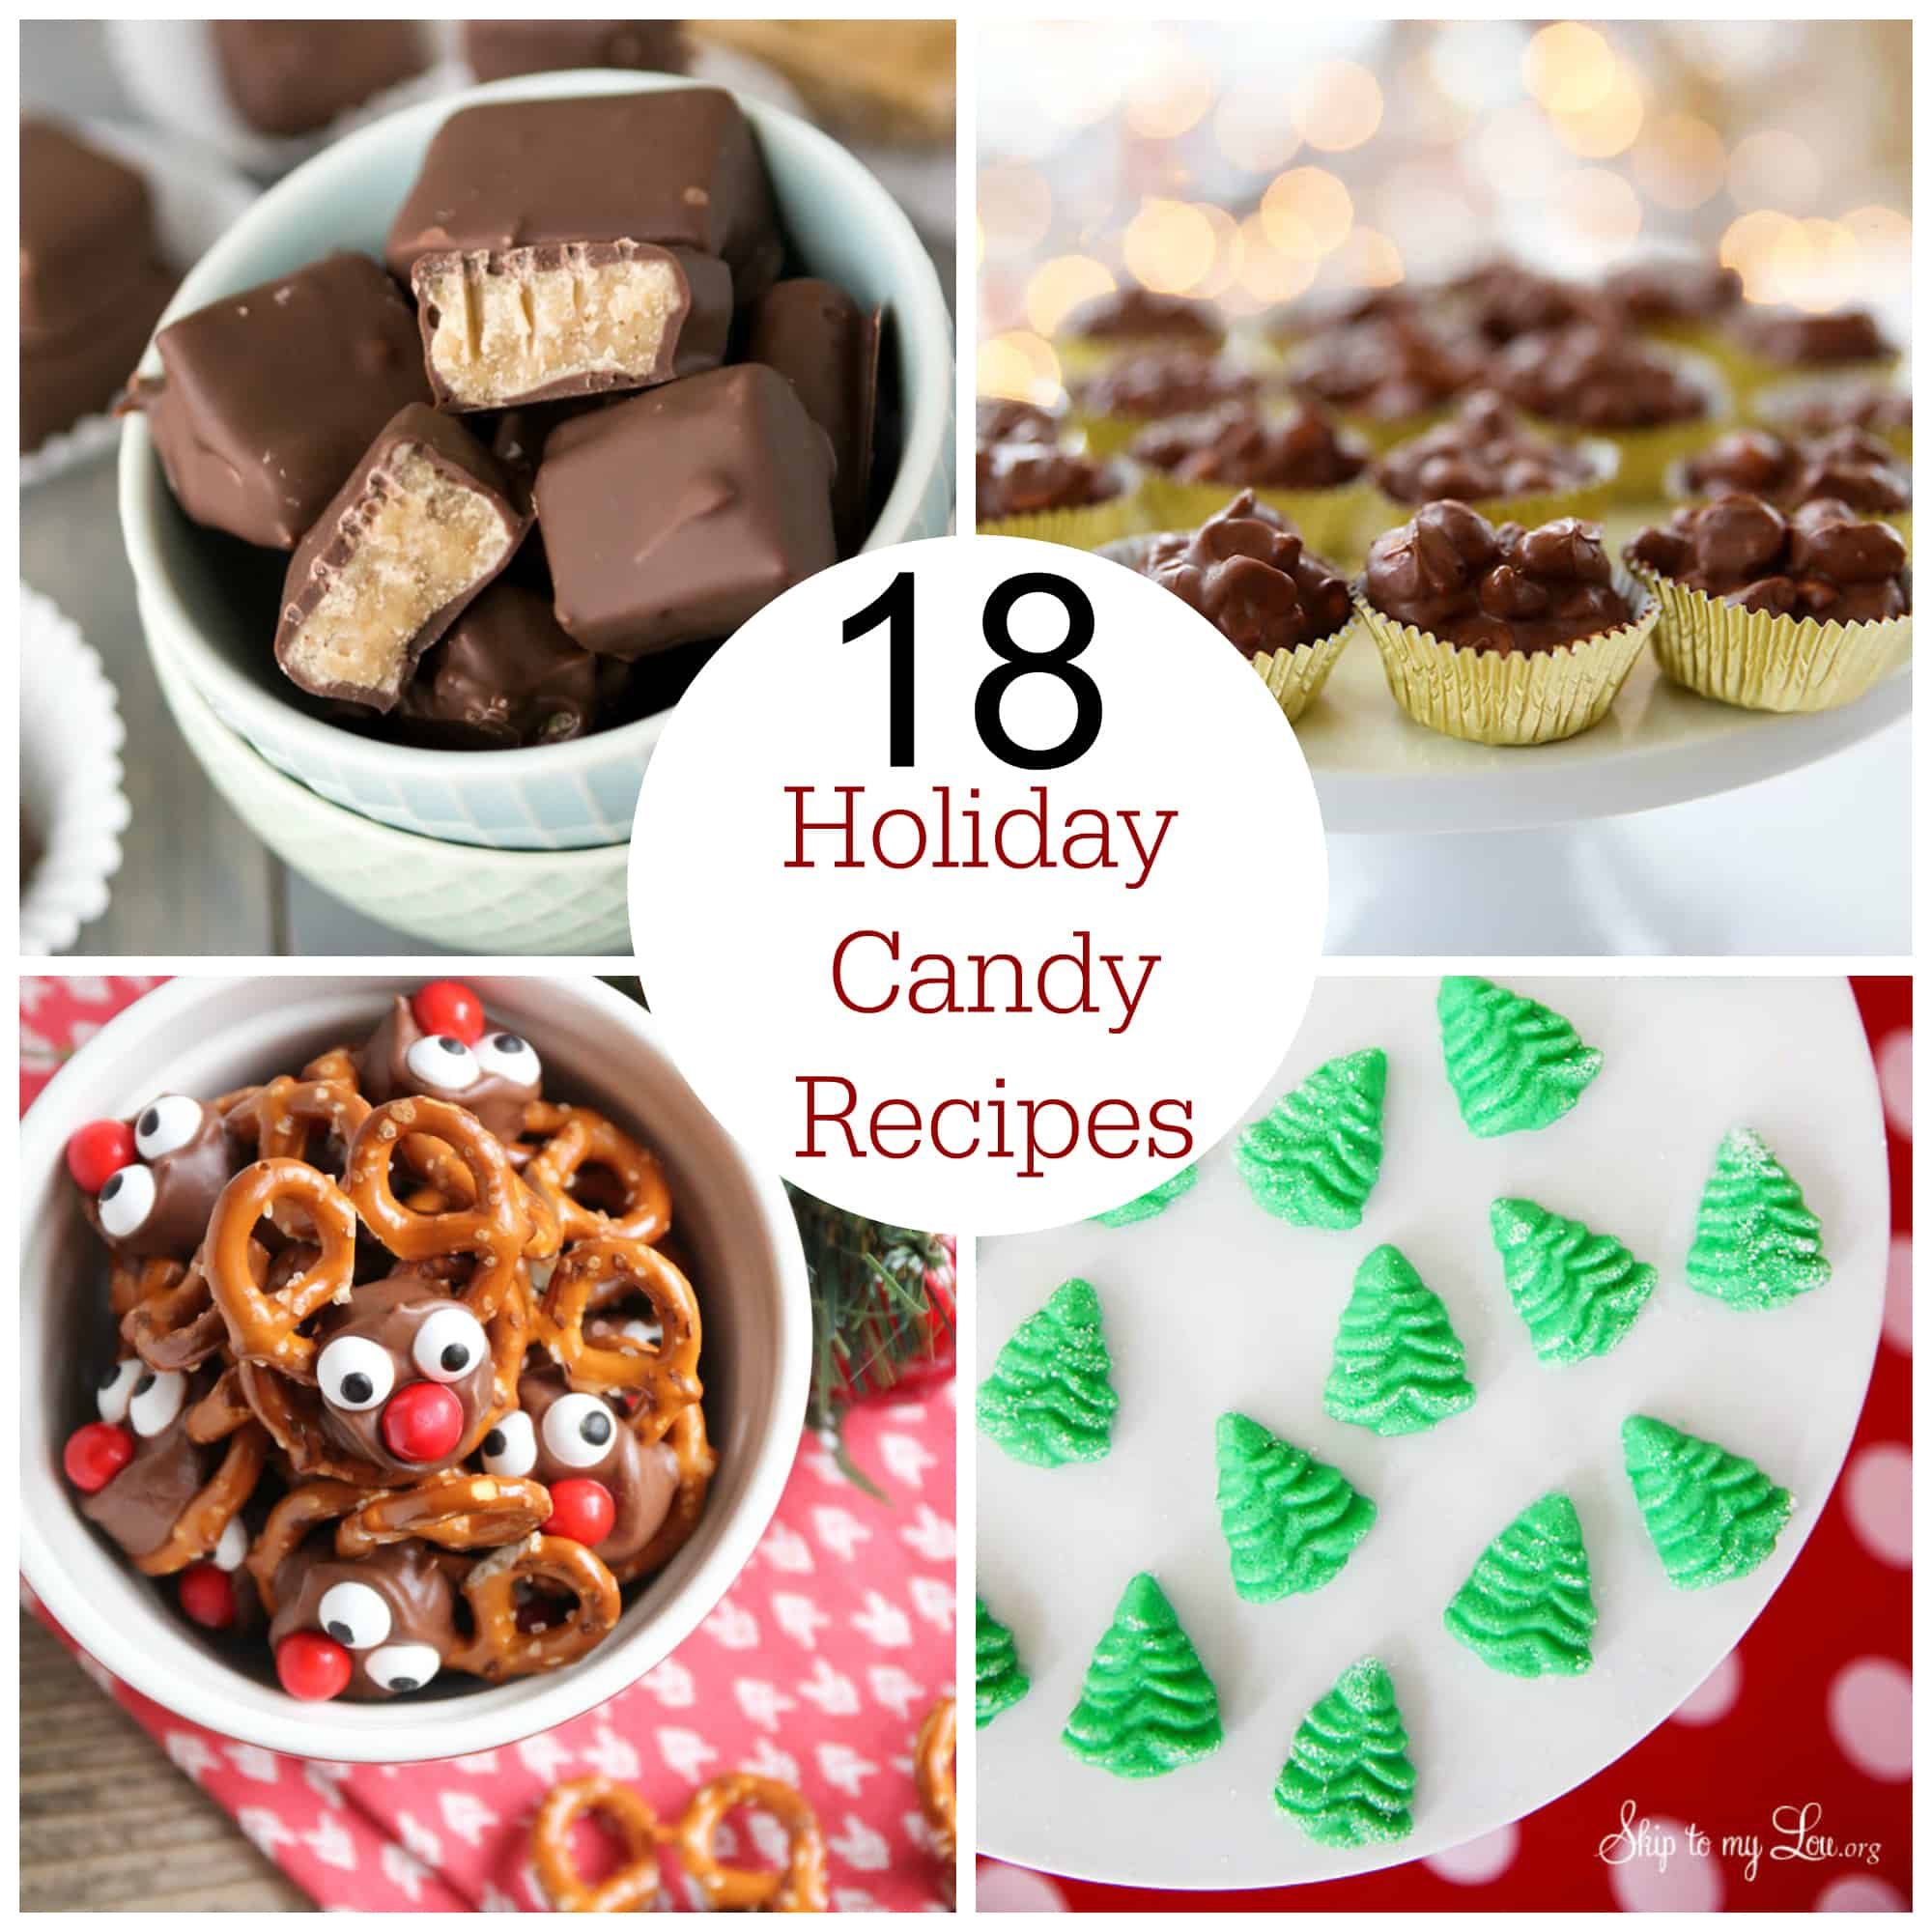 18 holiday candy recipes skip to my lou